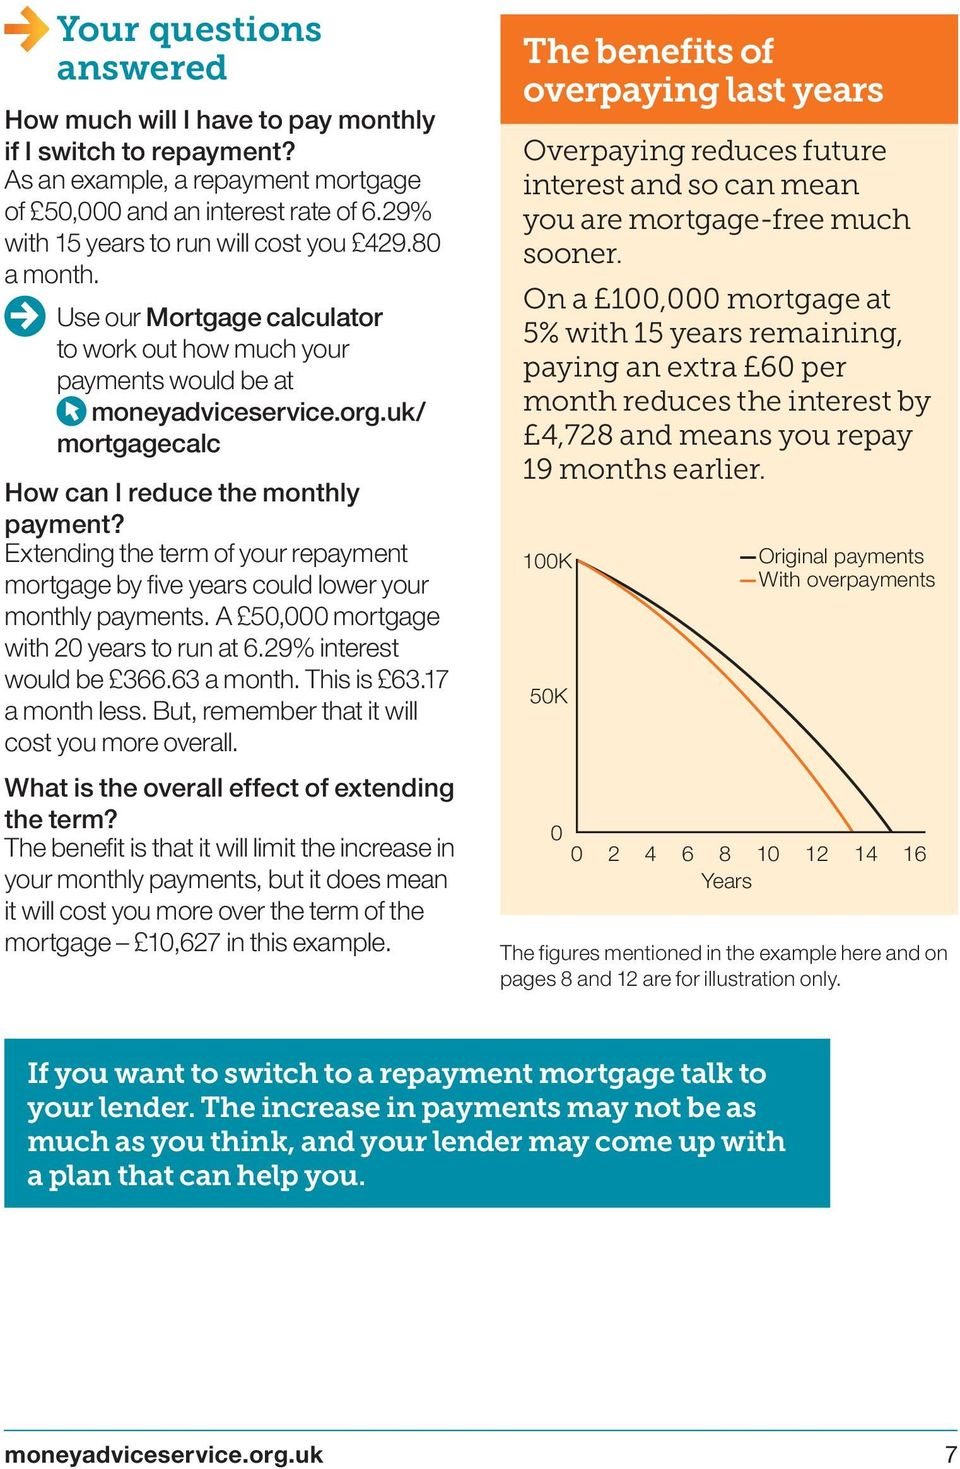 Extending the term of your repayment mortgage by five years could lower your monthly payments. A 50,000 mortgage with 20 years to run at 6.29% interest would be 366.63 a month. This is 63.